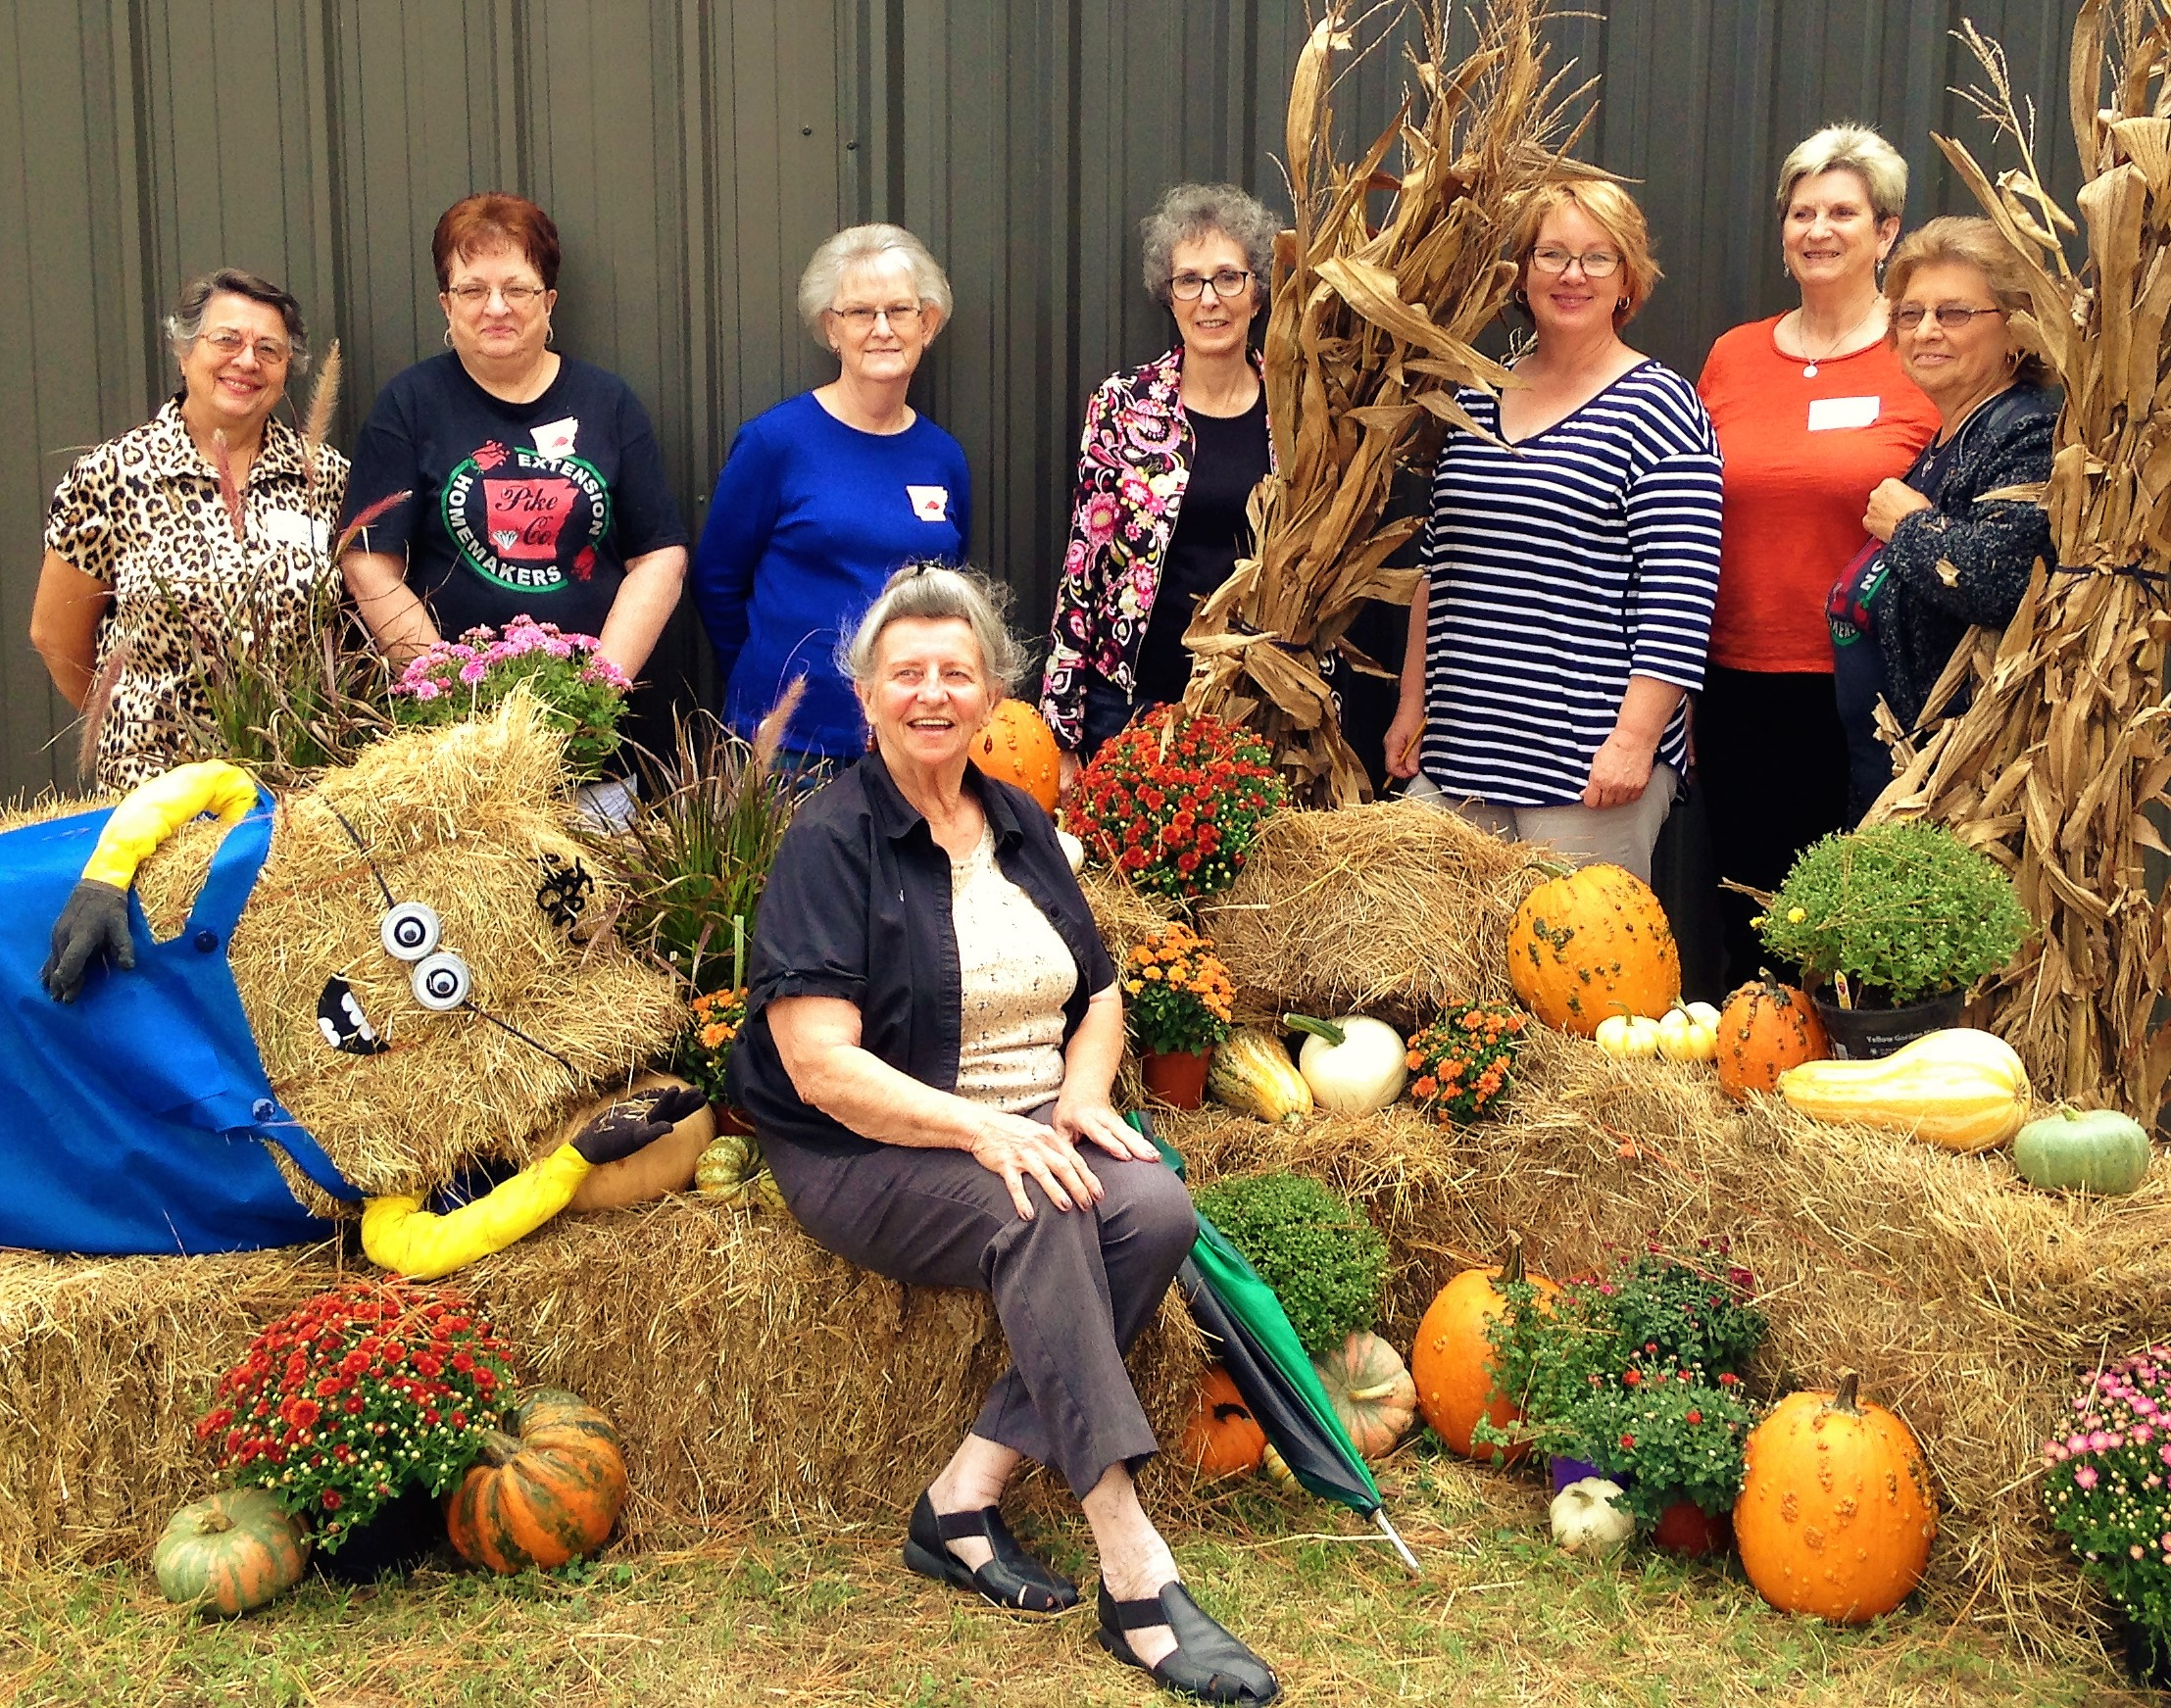 Pike County Members at District Fair posing for photo on decorative bales of hay